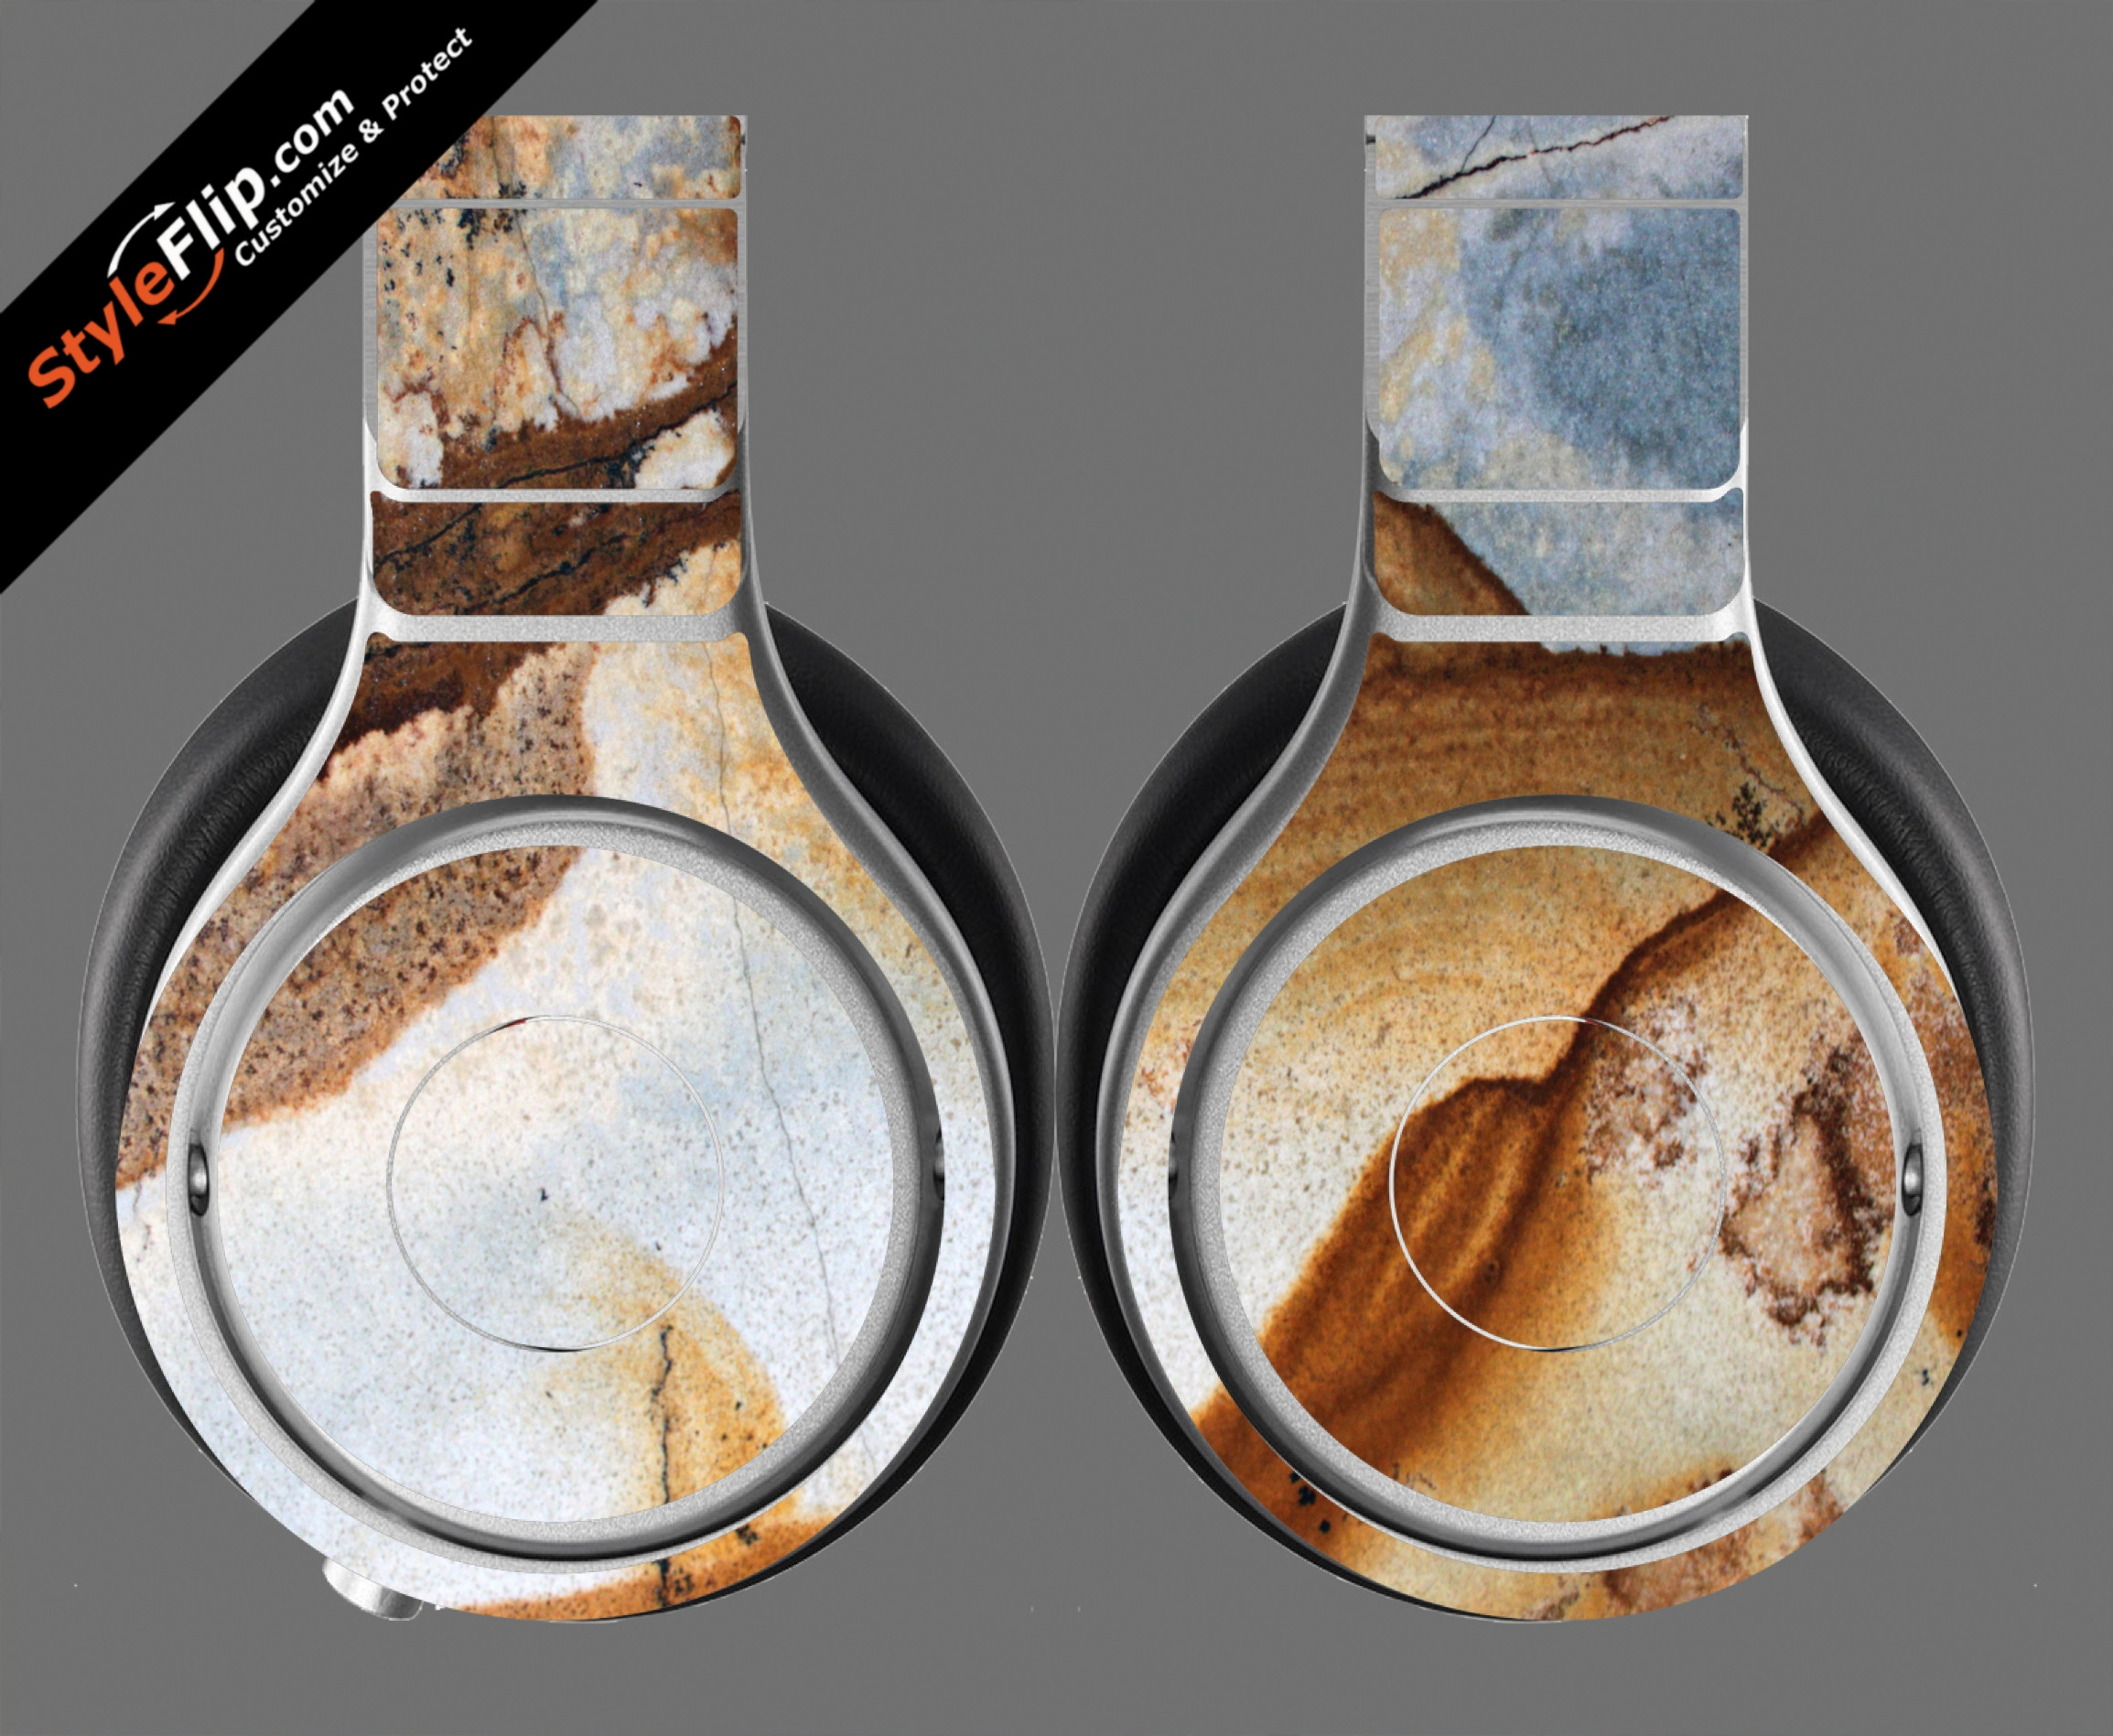 Stained Marble  Beats By Dr. Dre Beats Pro Model